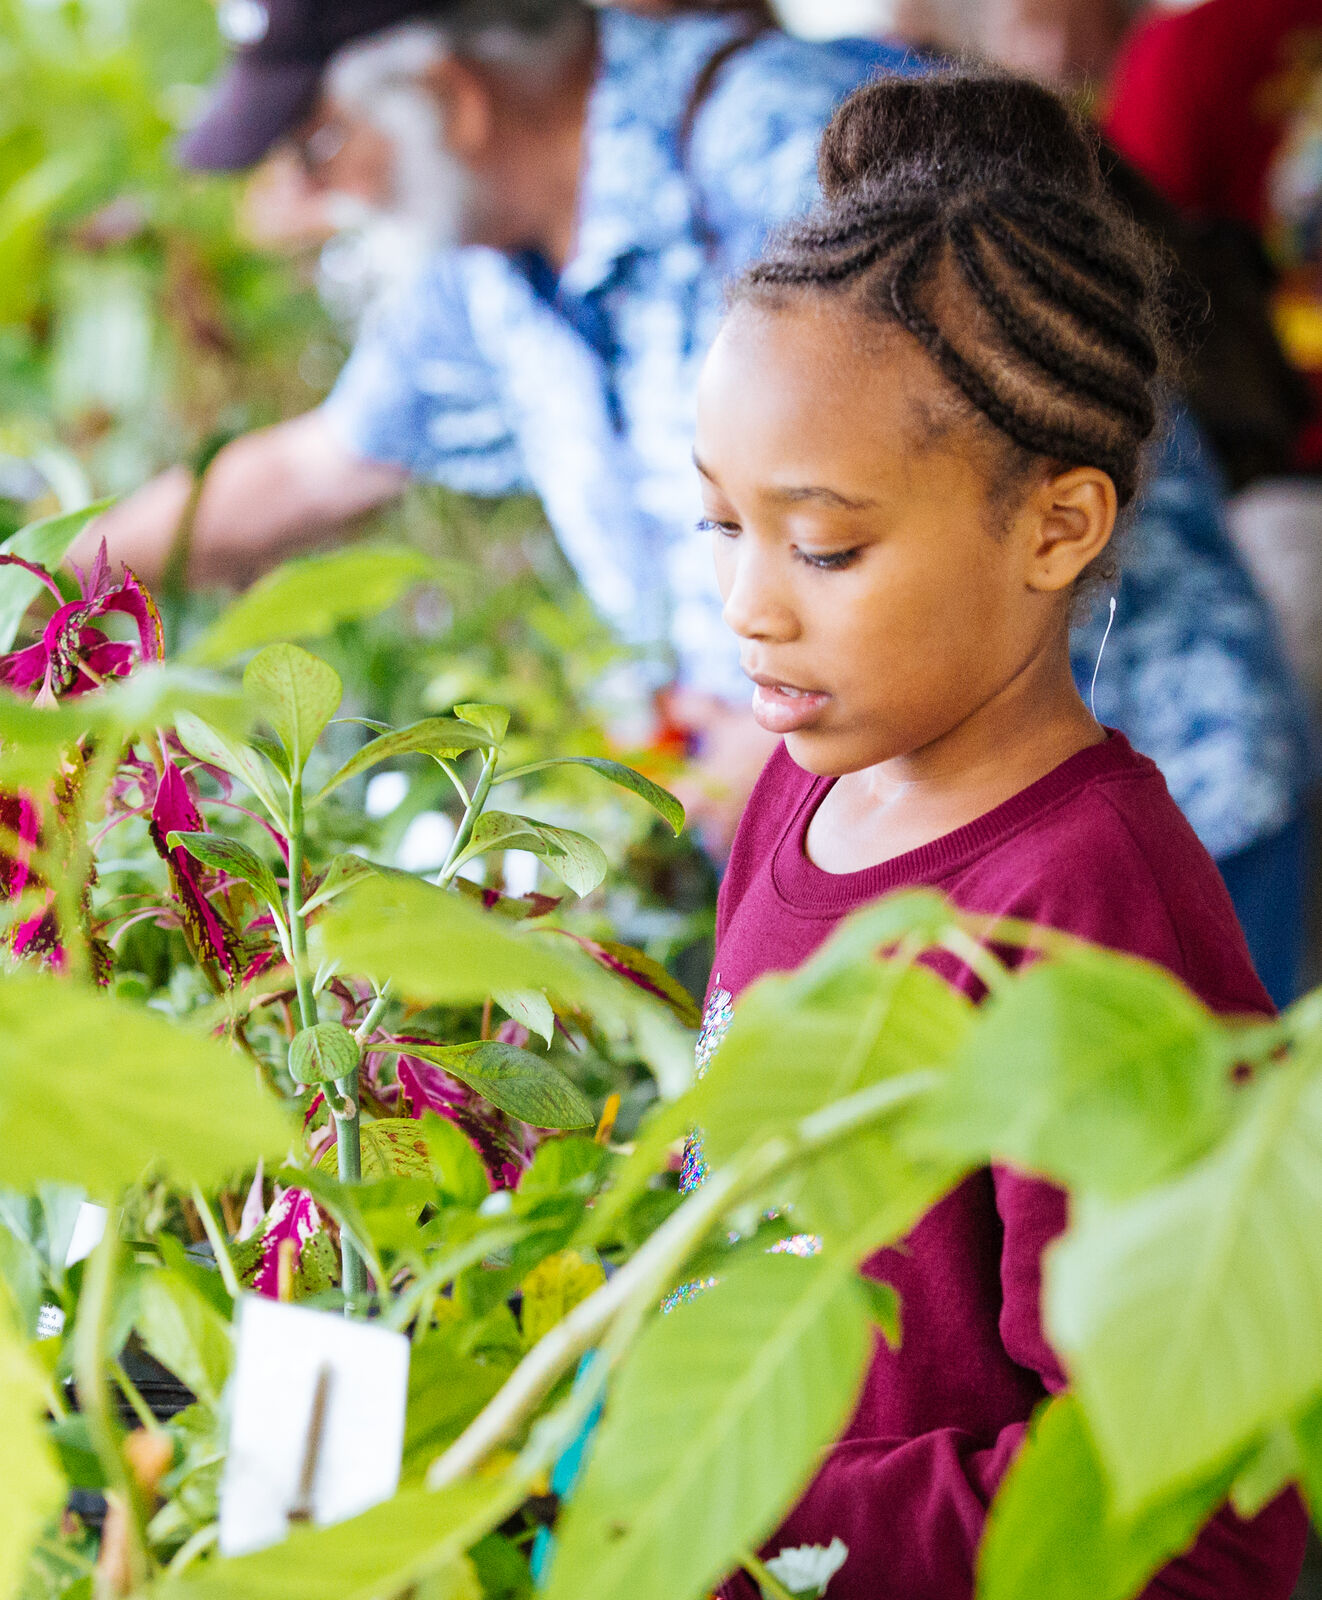 Young girl looking at plants.